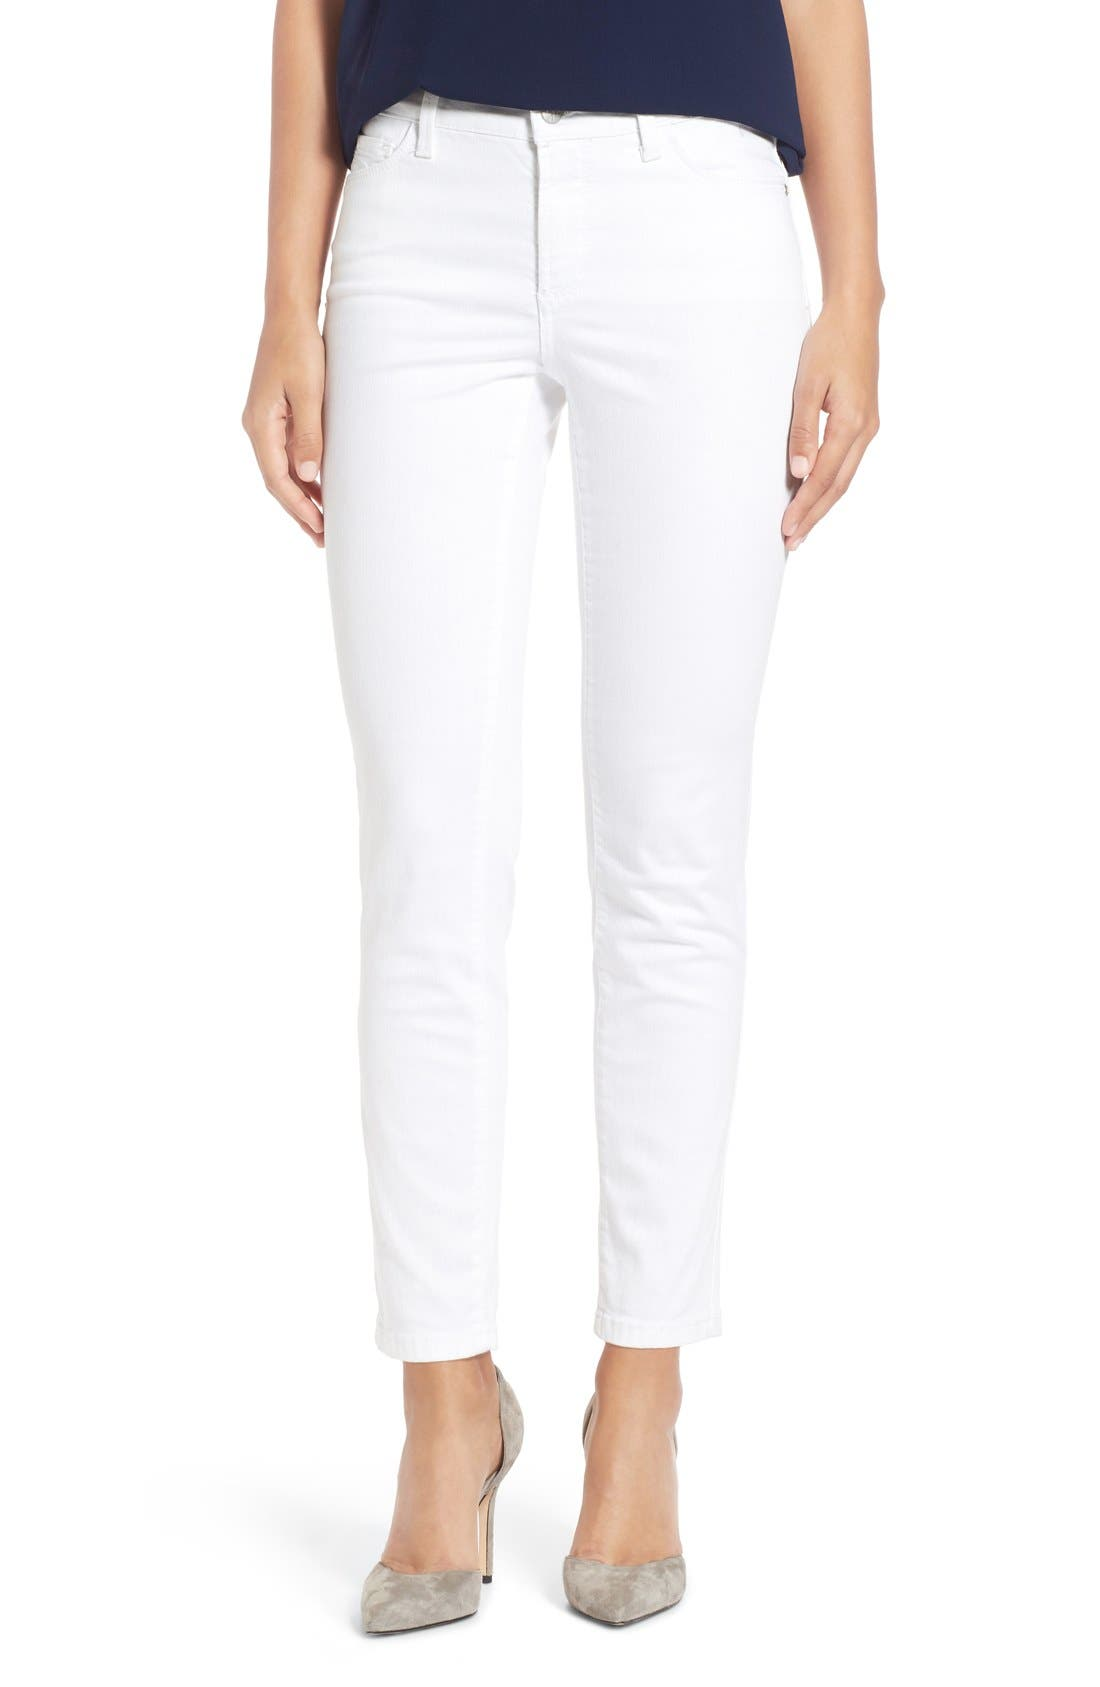 NYDJ Clarissa Colored Stretch Ankle Skinny Jeans (Regular & Petite)